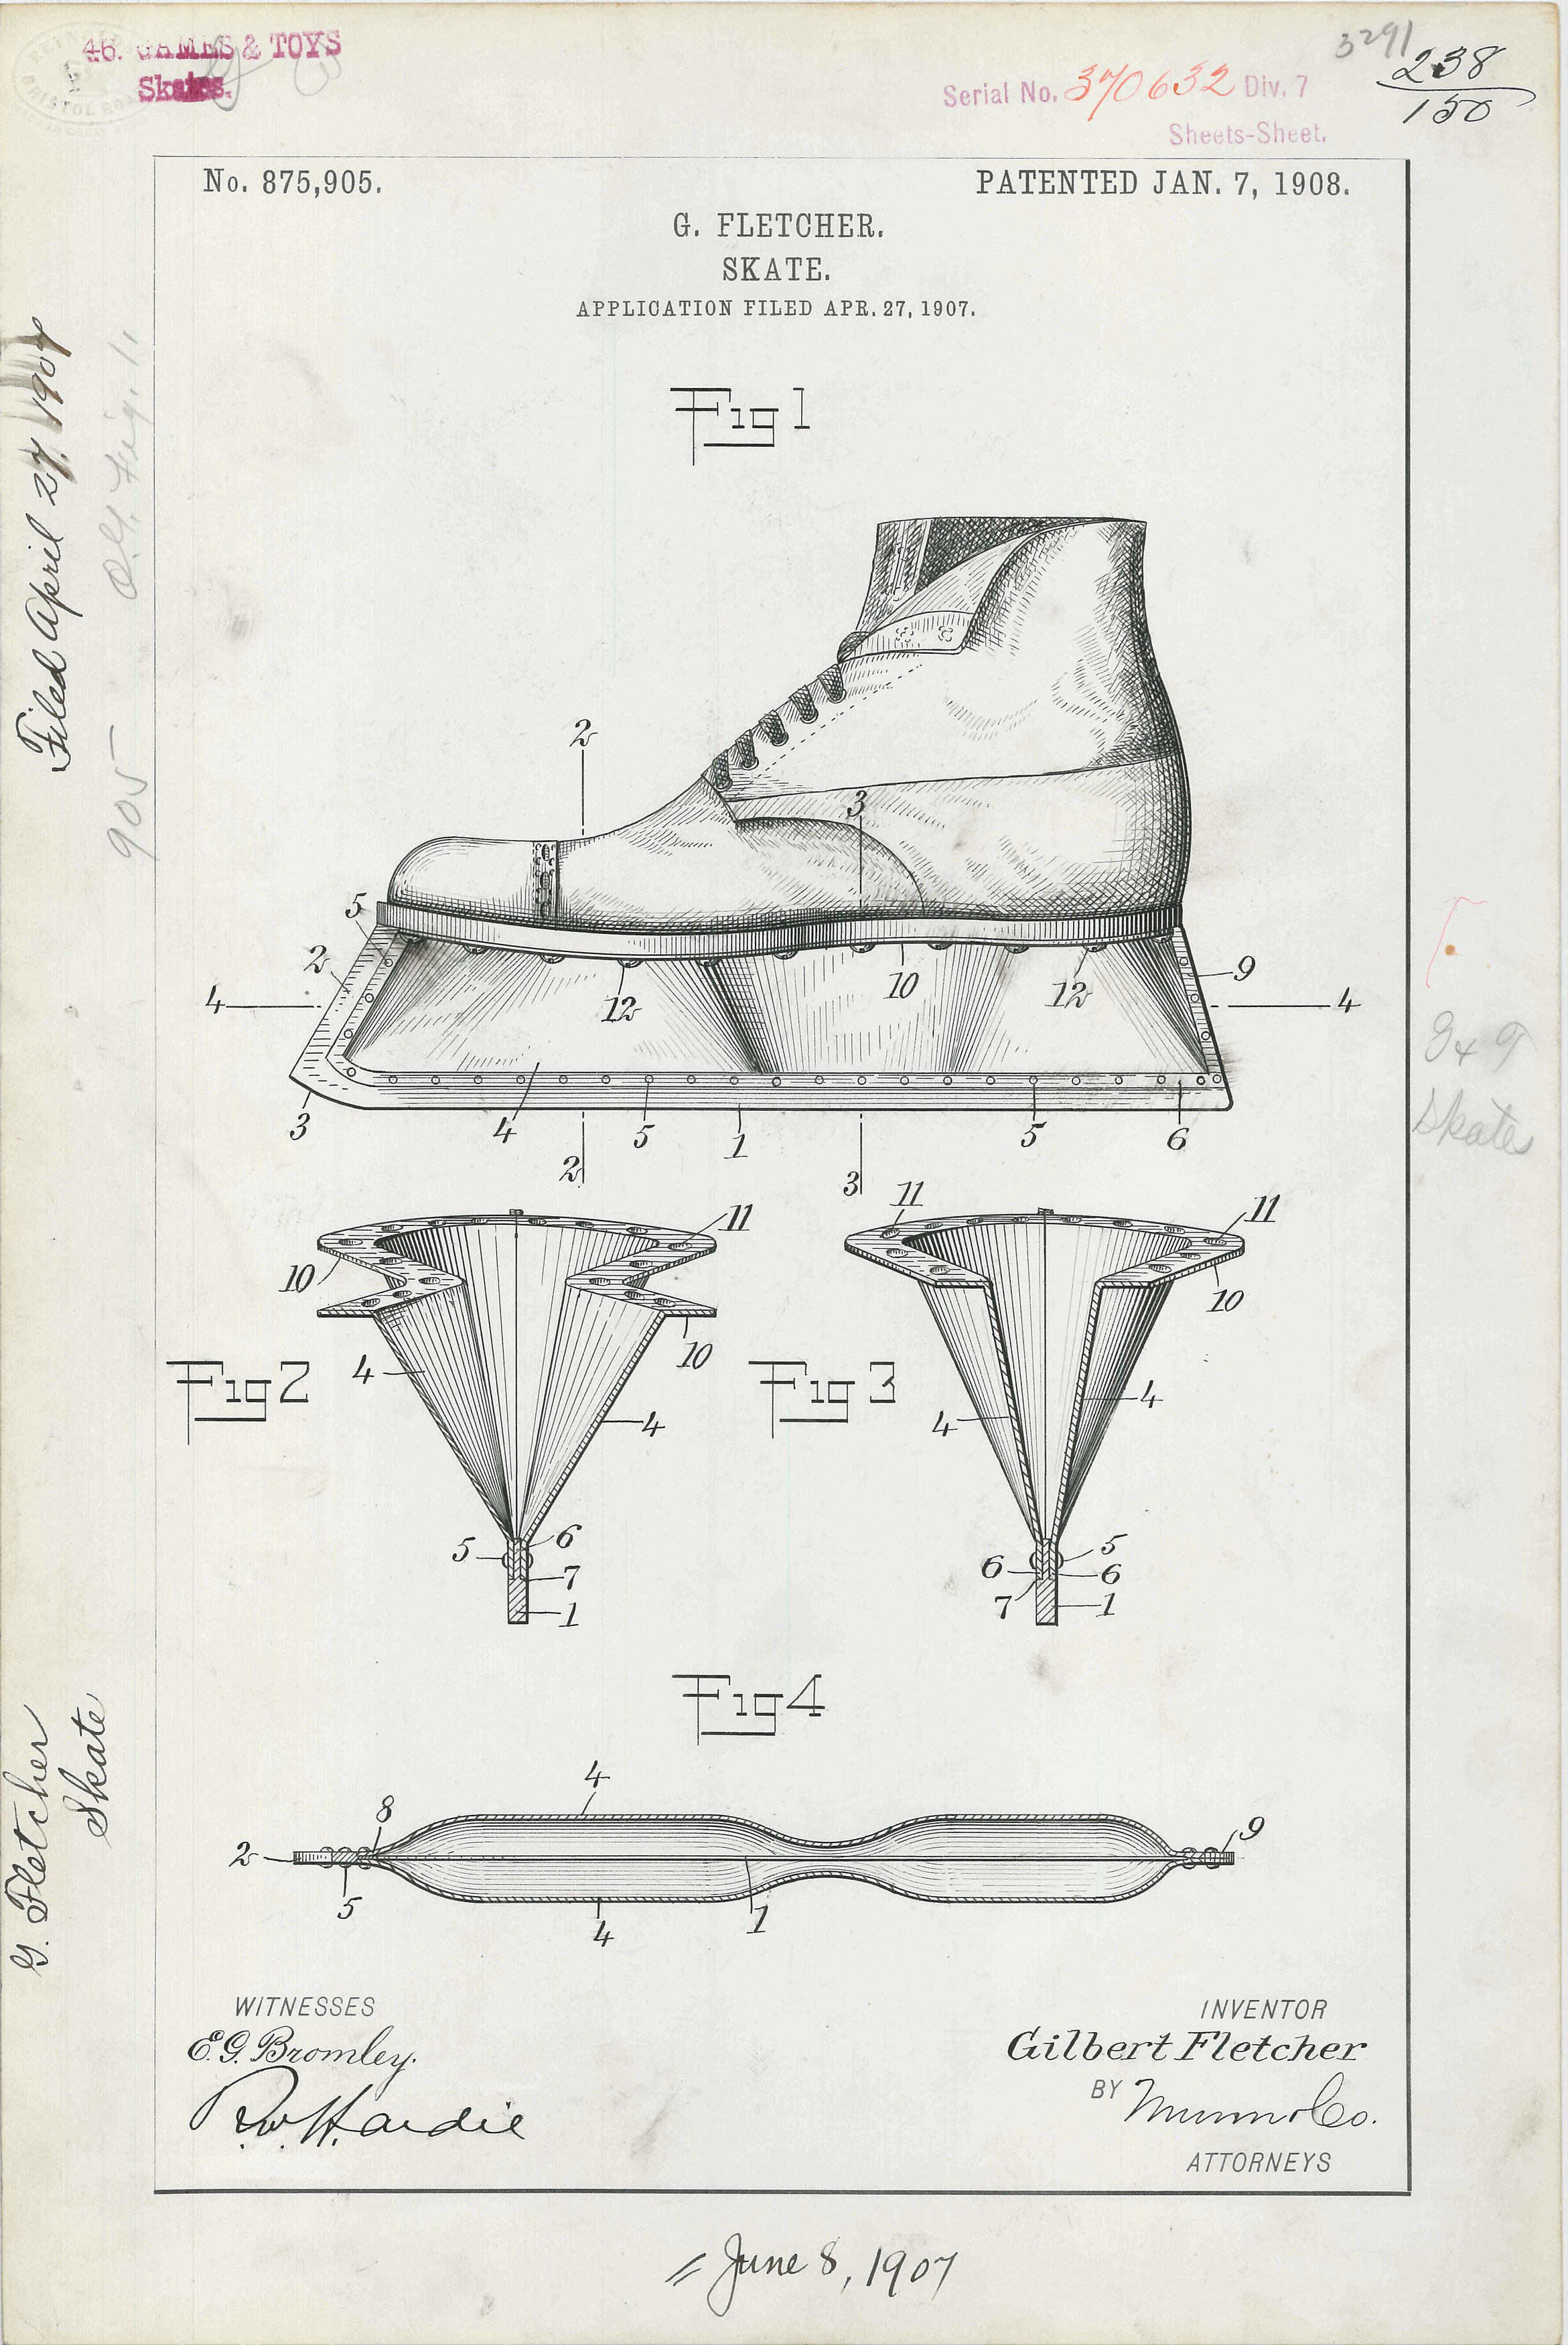 Patent drawing for G. Fletcher's Skate, 1/7/1908